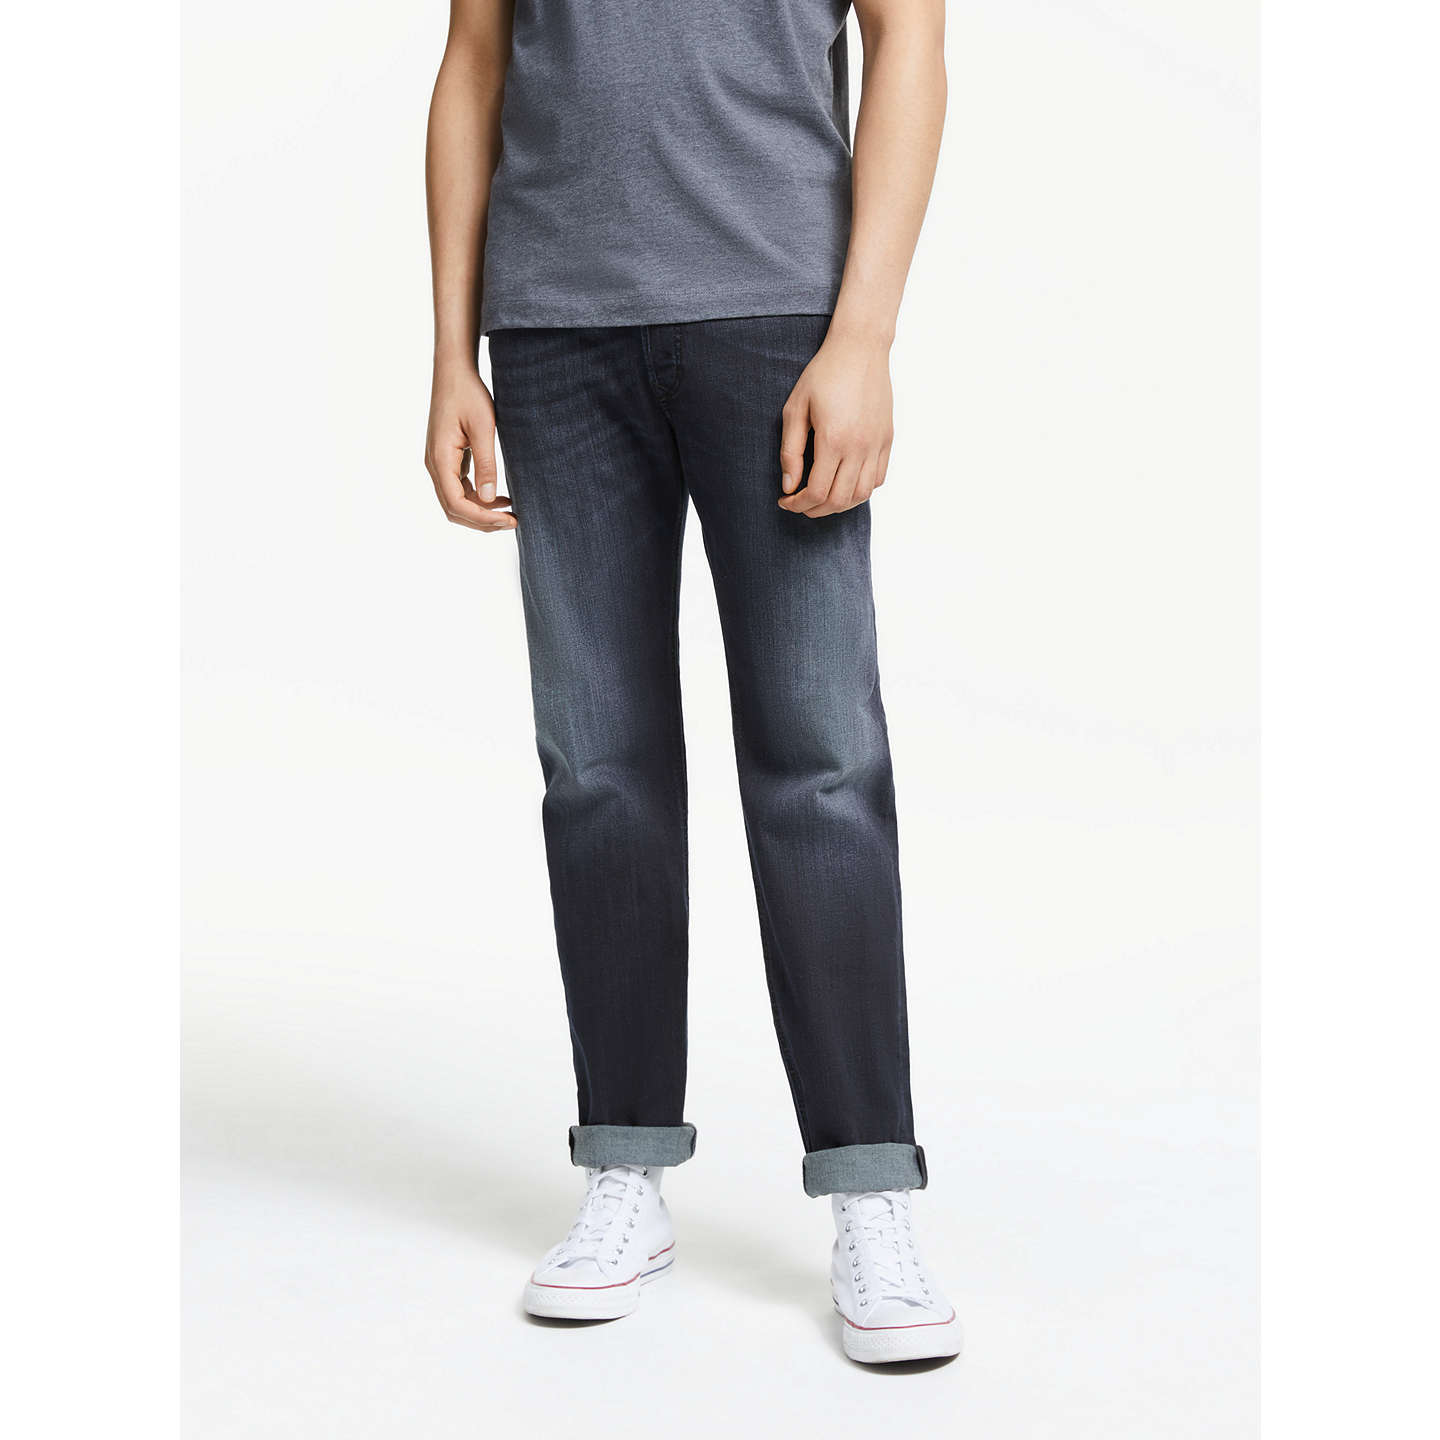 BuyDiesel Waykee Straight Jeans, Mid Wash 0814W, 28S Online at johnlewis.com